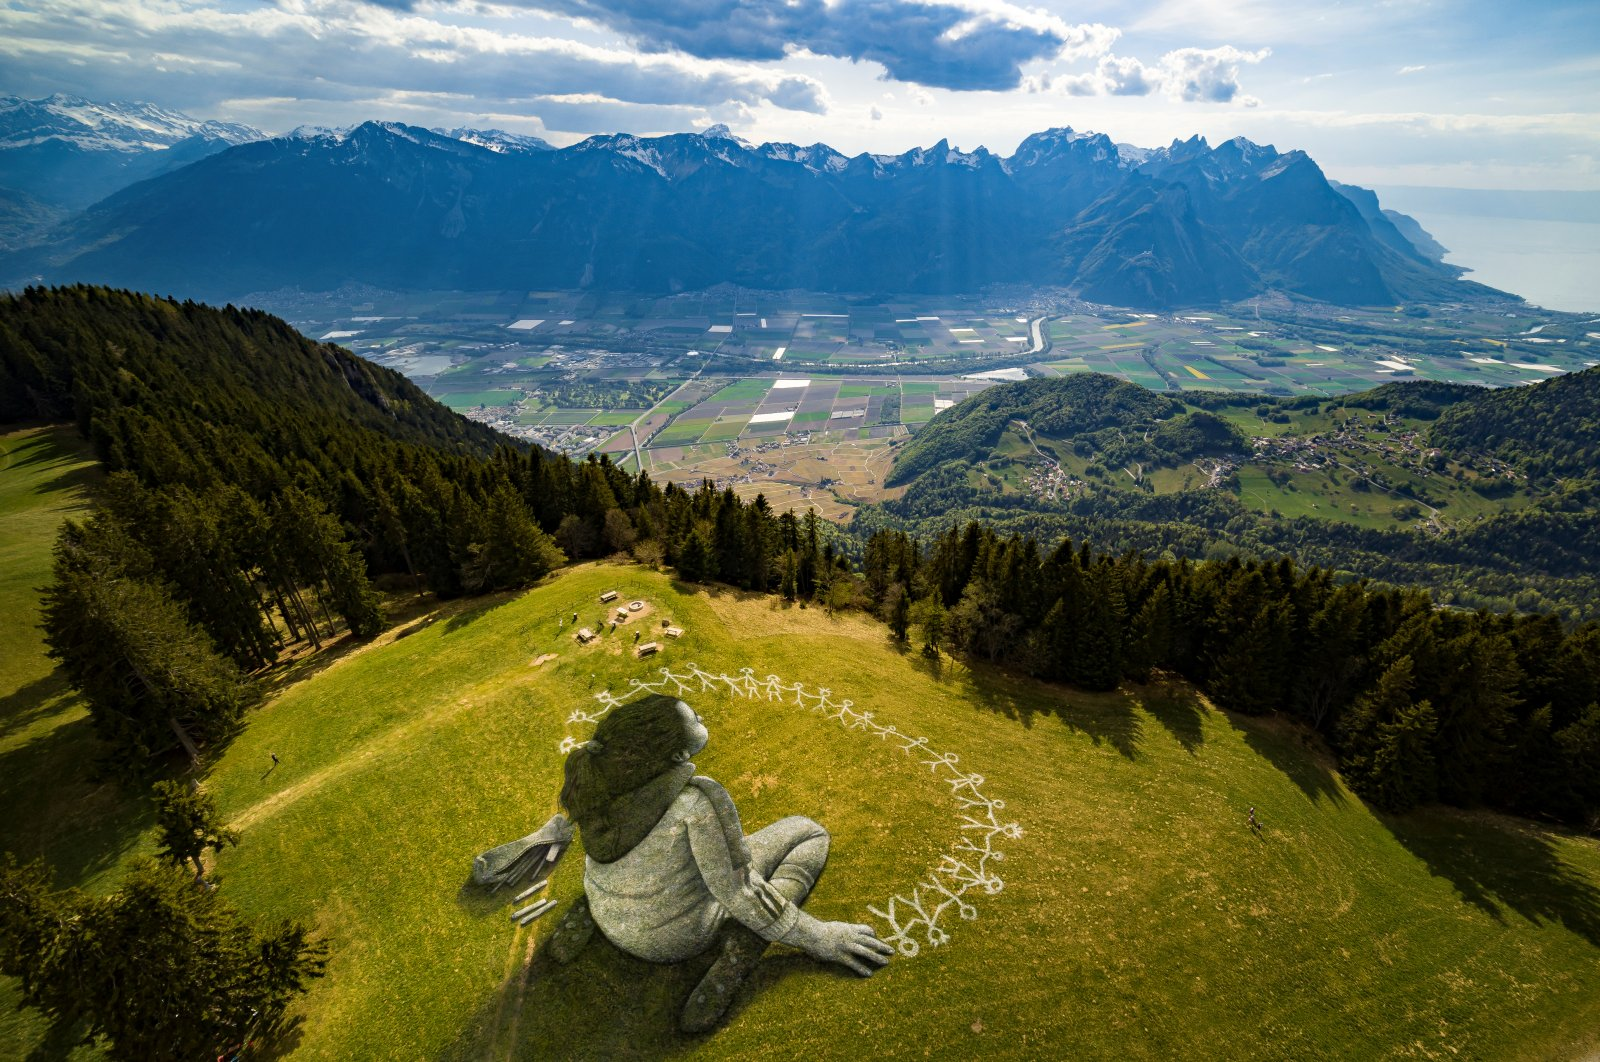 "An artwork called ""Beyond Crisis"" by French artist Guillaume Legros aka Saype and created with an eco paint made out of chalk and coal over a 3,000-square-meter field is pictured during the coronavirus disease outbreak in Leysin, Switzerland, April 24, 2020. (Reuters Photo)"